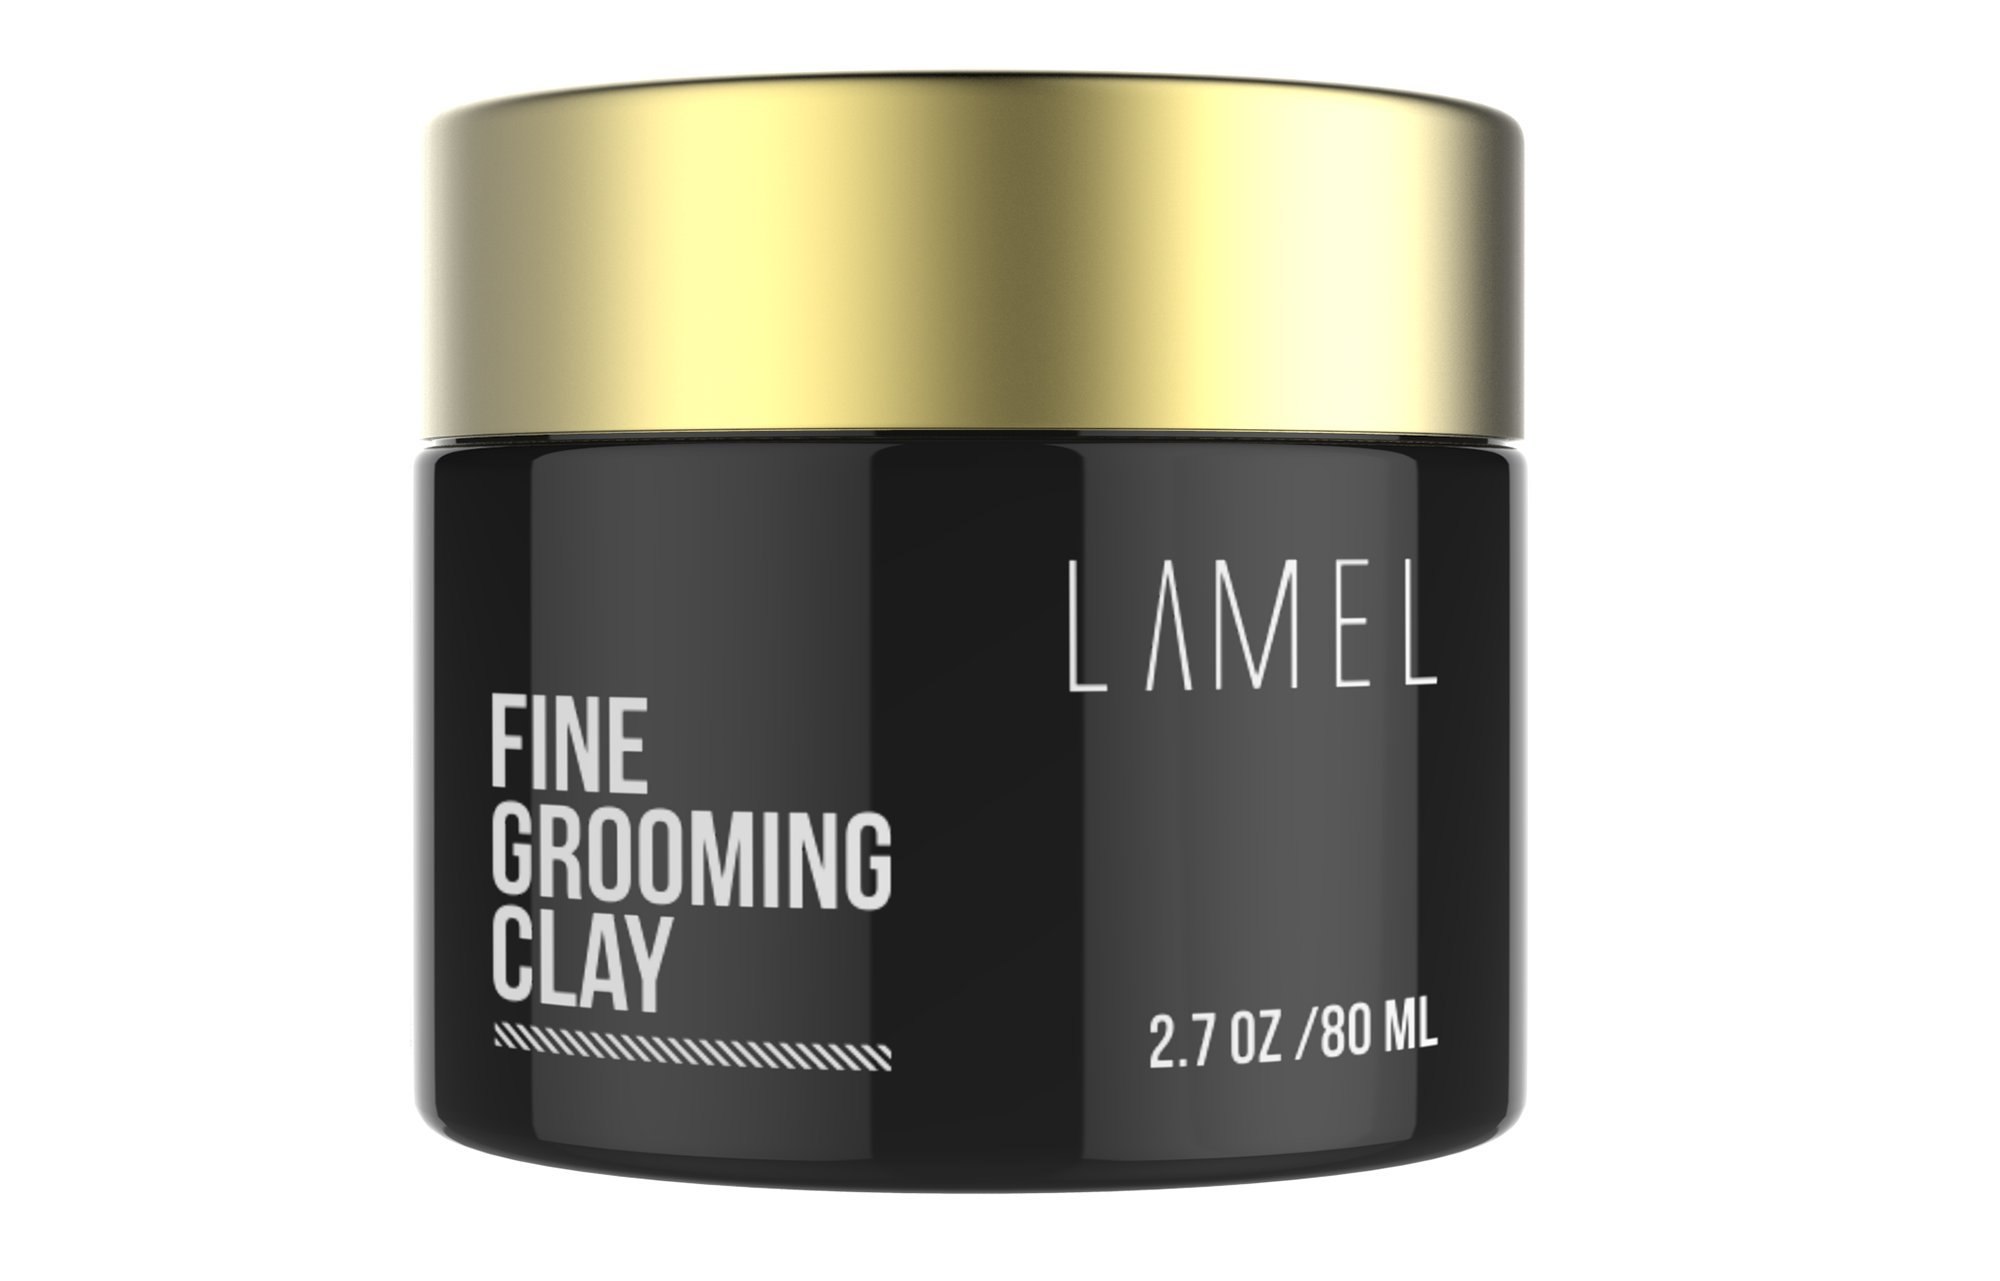 Best Molding Creme for Strong Hold Matte Finish - No Shine Hair Product For Textured Modern Hairstyles - Lamel Styling Clay for All Hair Types 2.7 Ounce by LAMEL